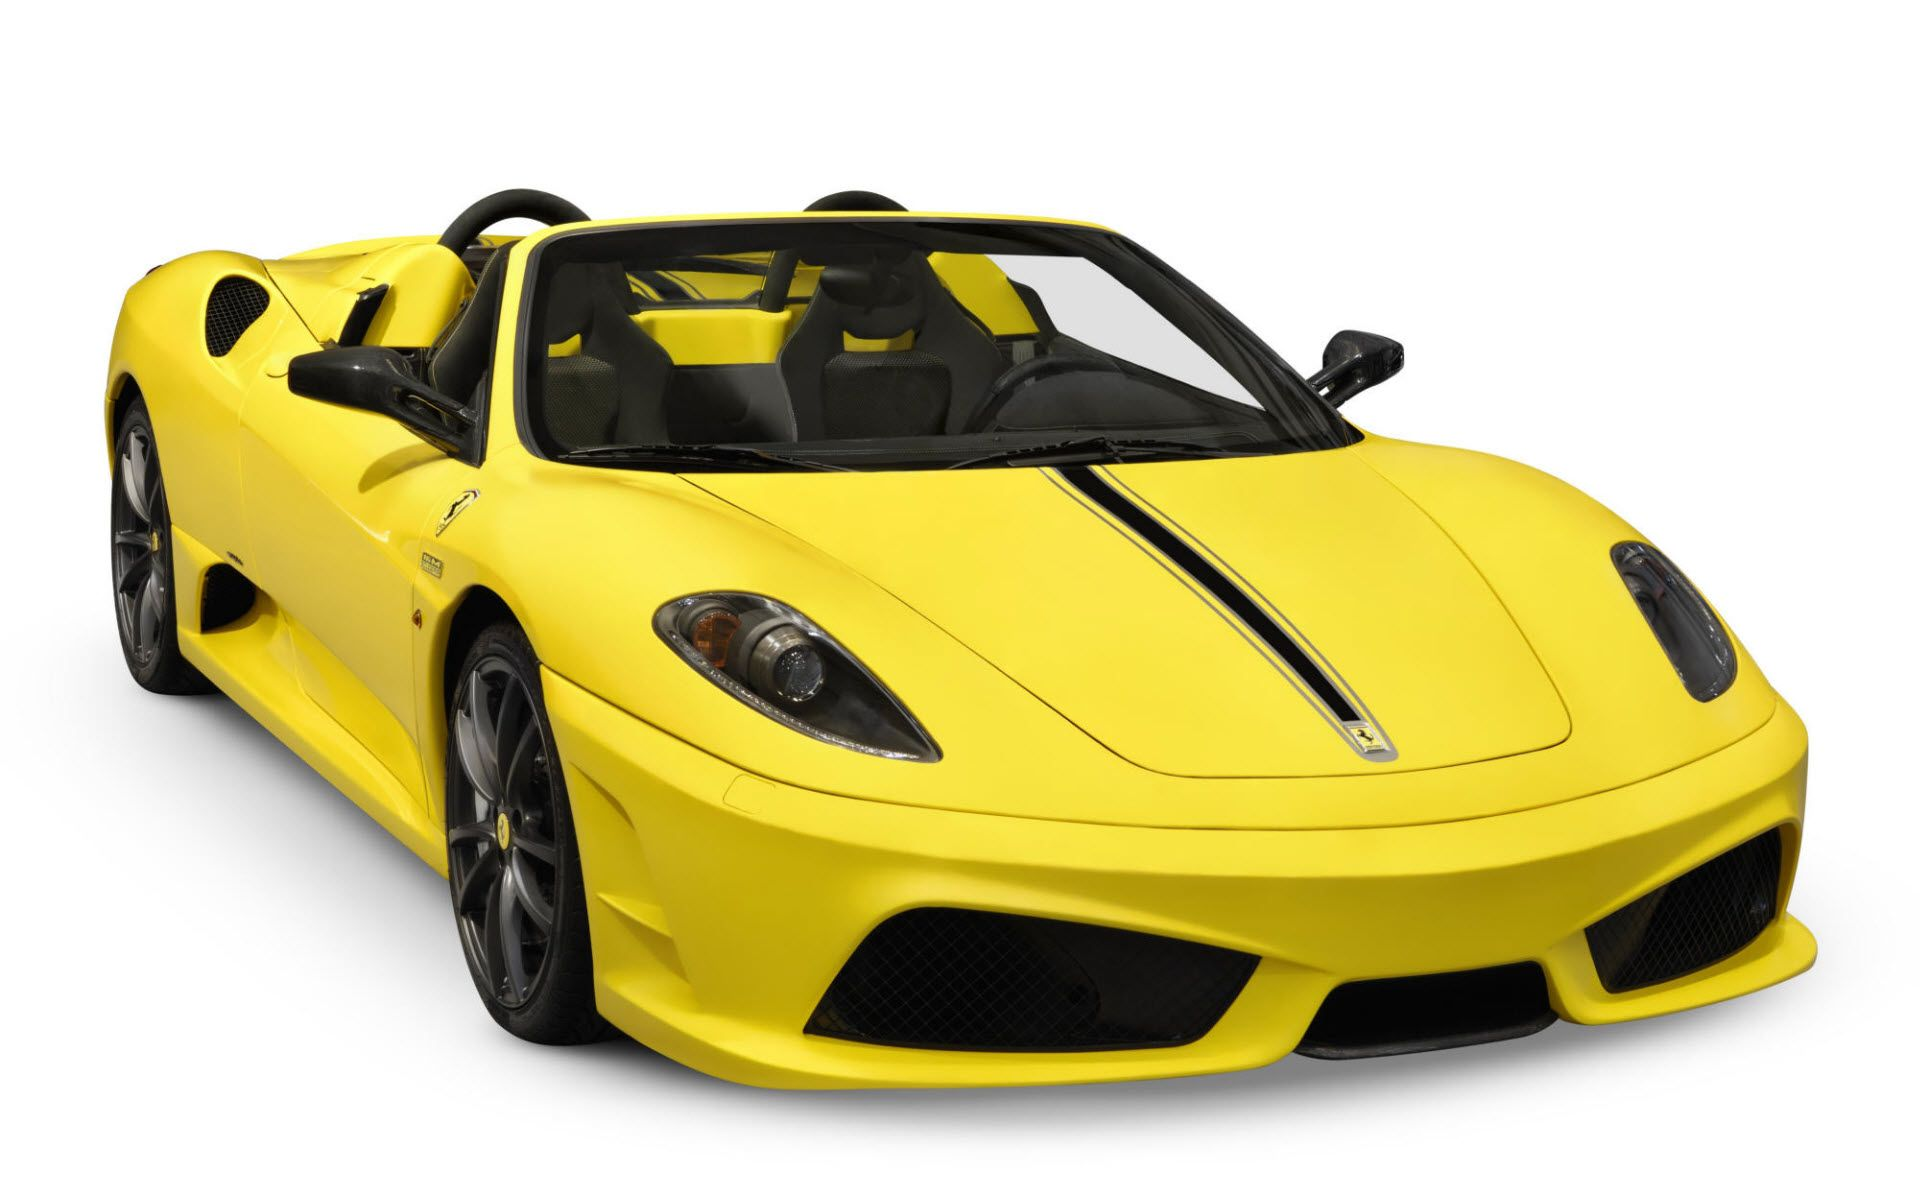 Amazing Yellow Ferrari Sport Cars Cabriolet Front Right Angle View